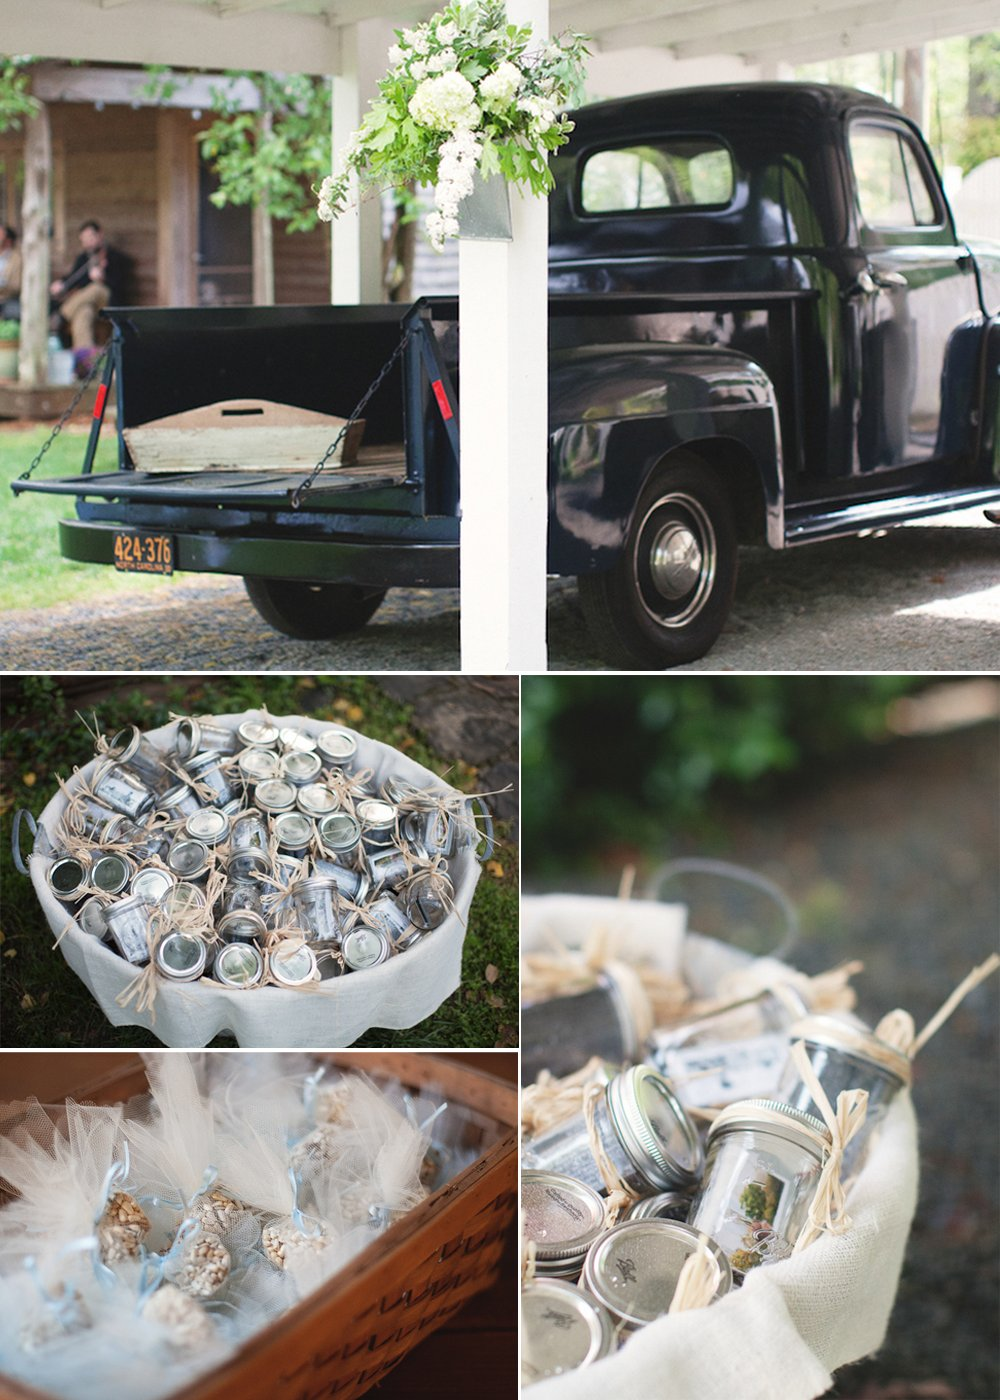 Vintage-wedding-car-personalized-wedding-guest-favors-real-weddings-rustic-chic.full